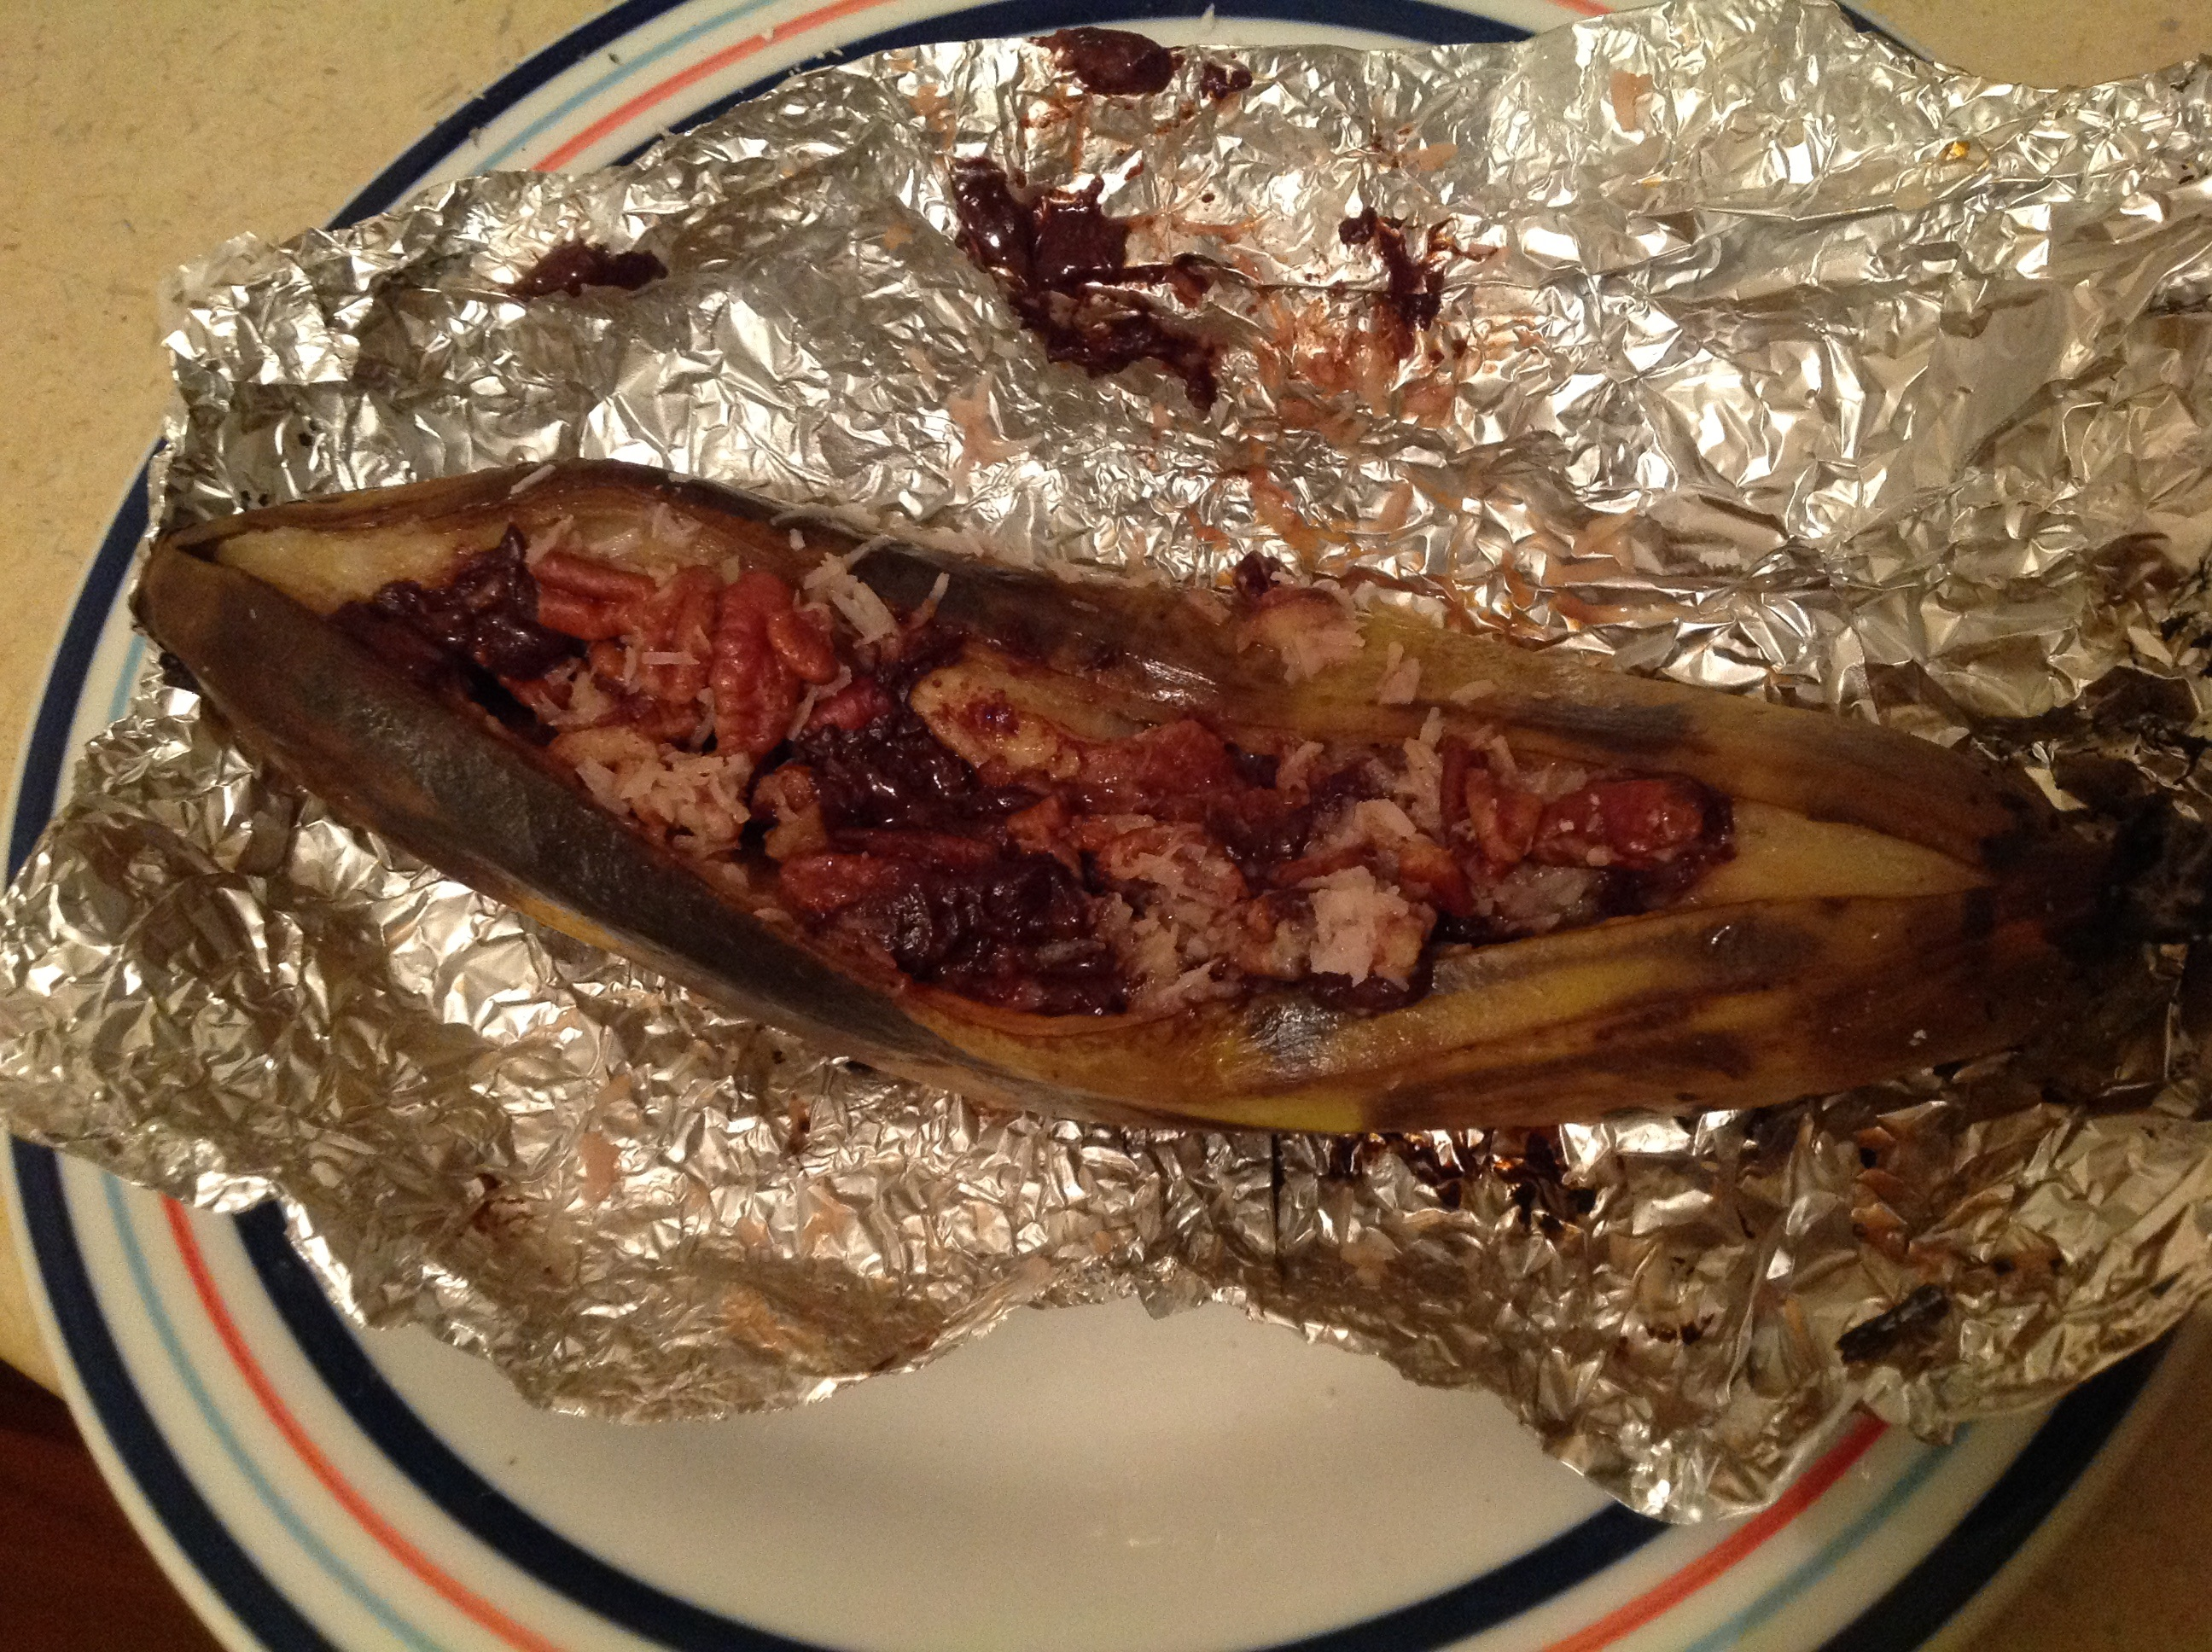 Campfire Stuffed Bananas on tinfoil after cooking.